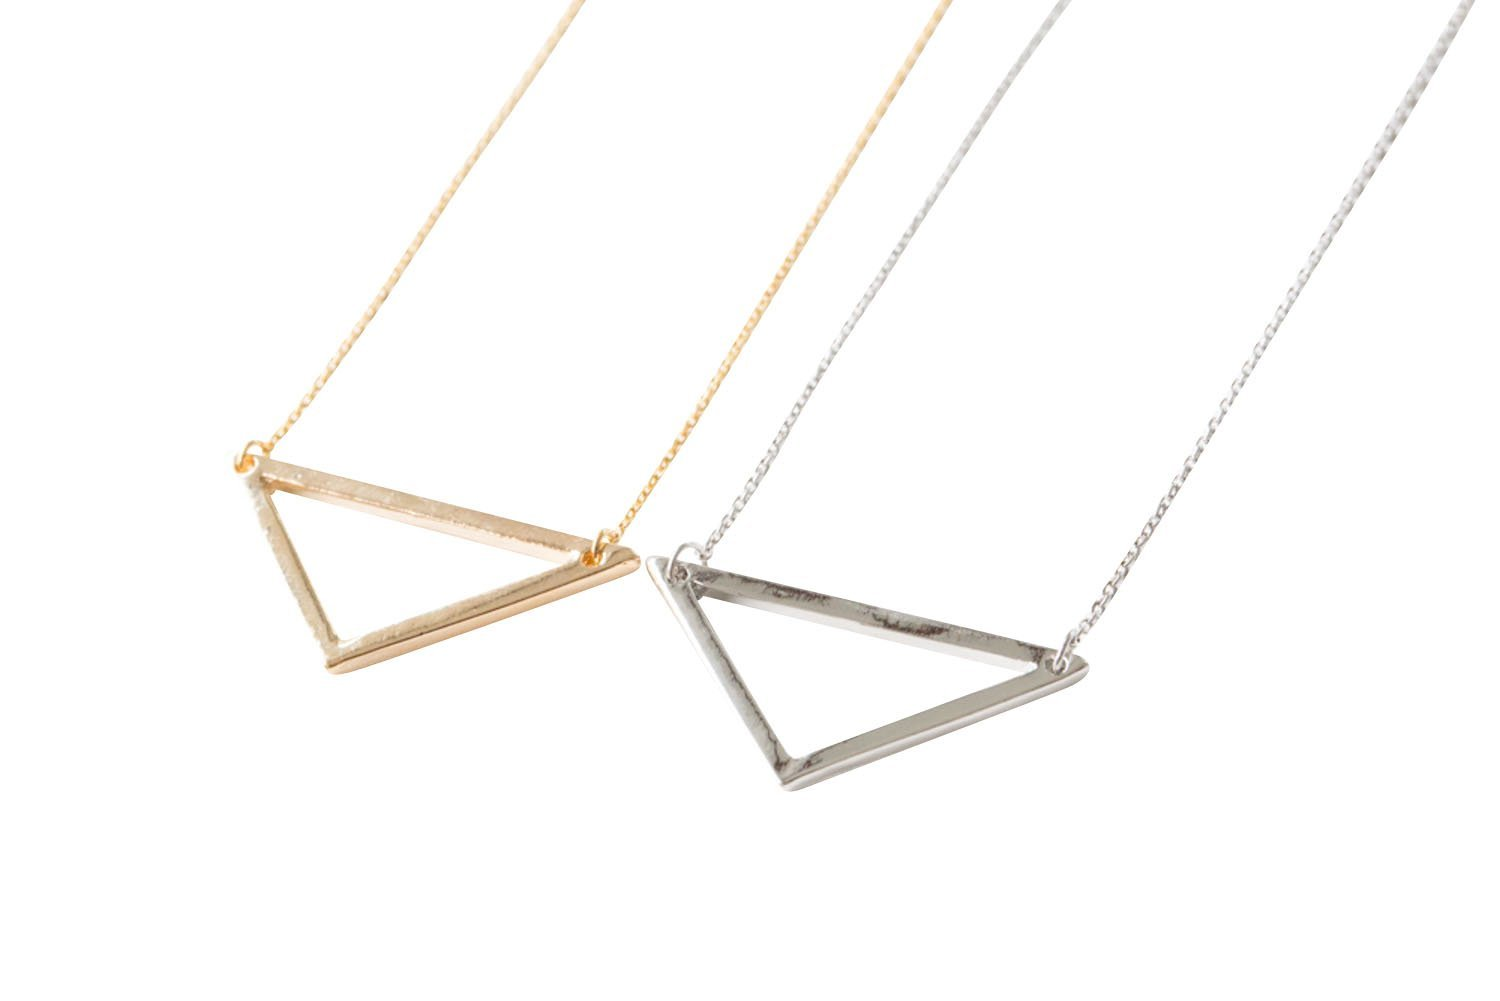 Upside Down Open Triangle Necklace-eo , triangle jewelry, triangle necklace, triangle shape jewelry, triangle shape necklace, triangle jewellry, geome